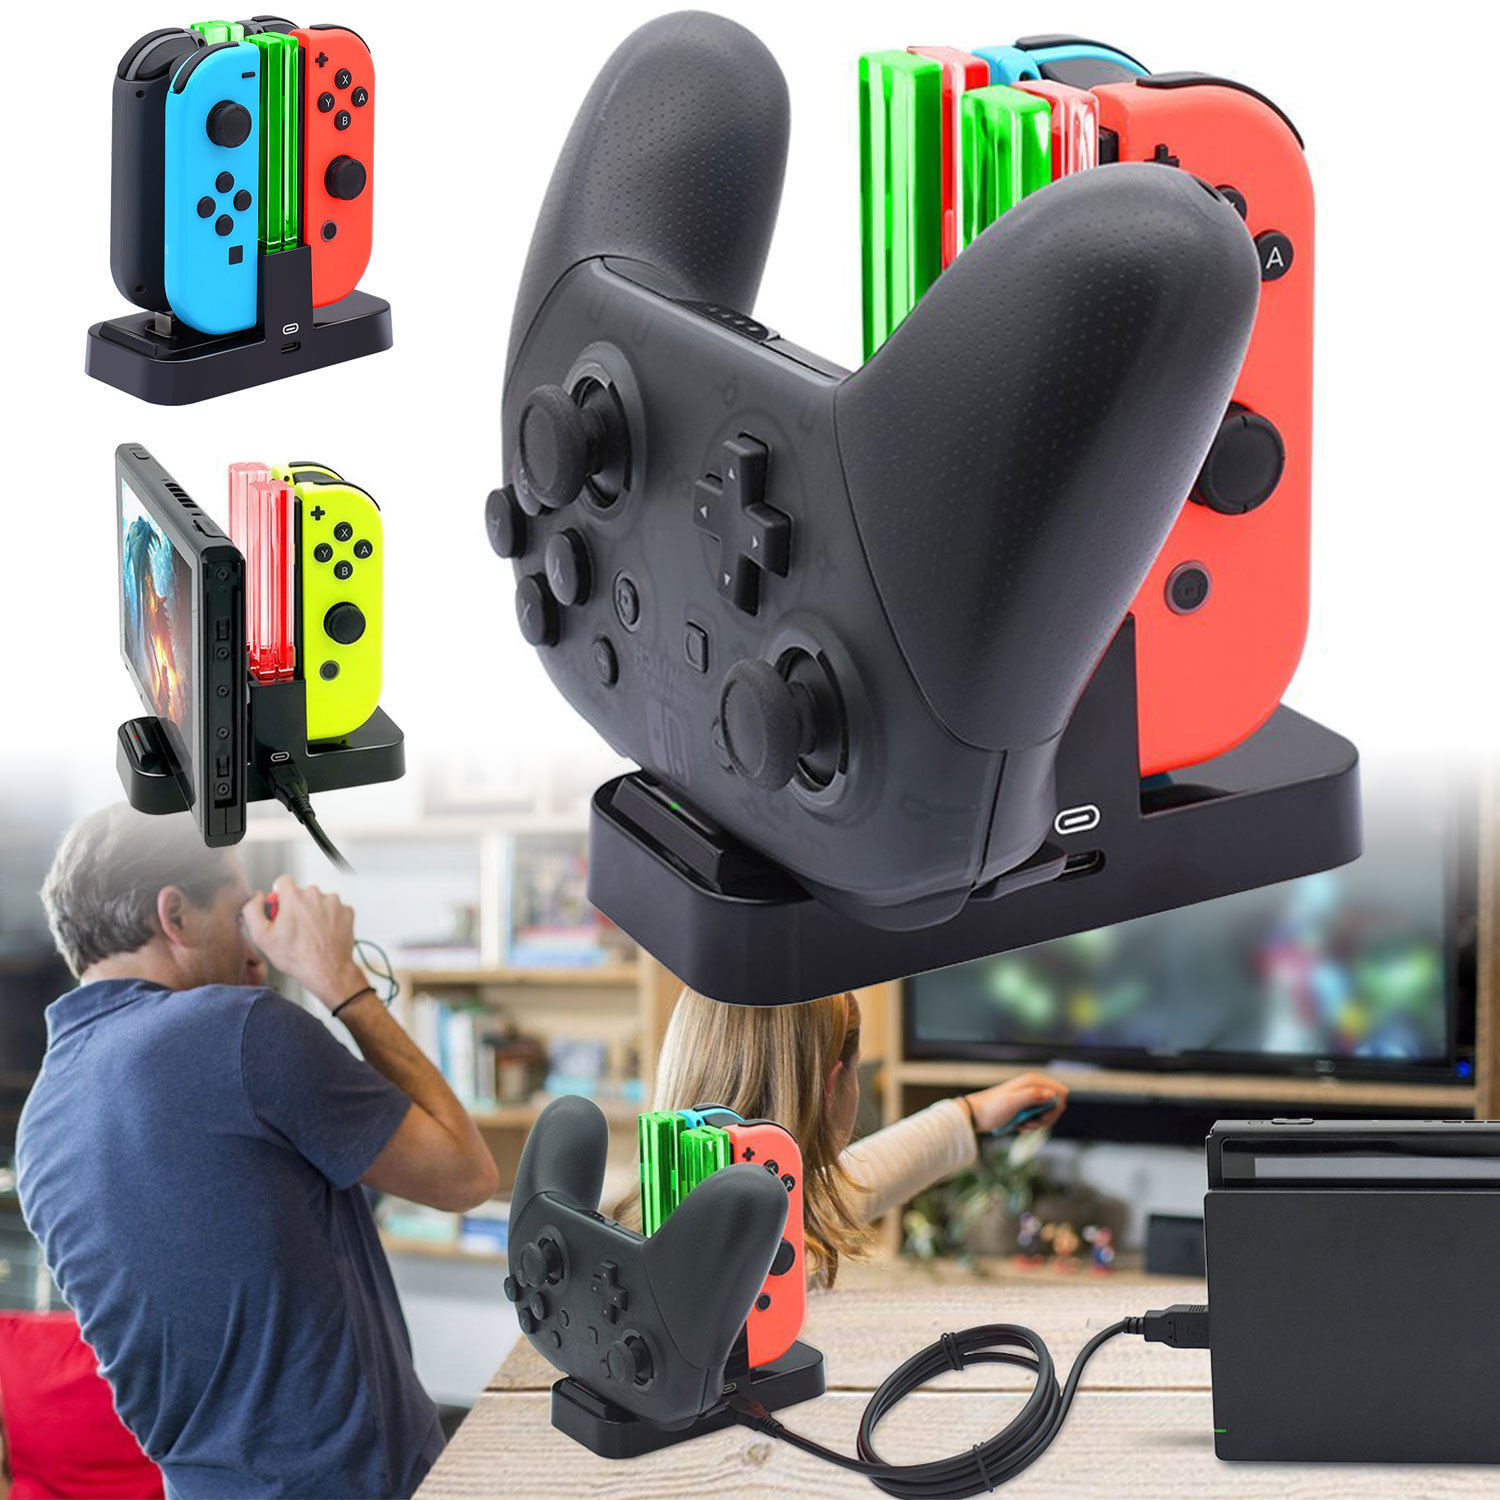 Controller Charger Stand Desktop Charging Dock for Nintendo Switch Joy-Con Pro